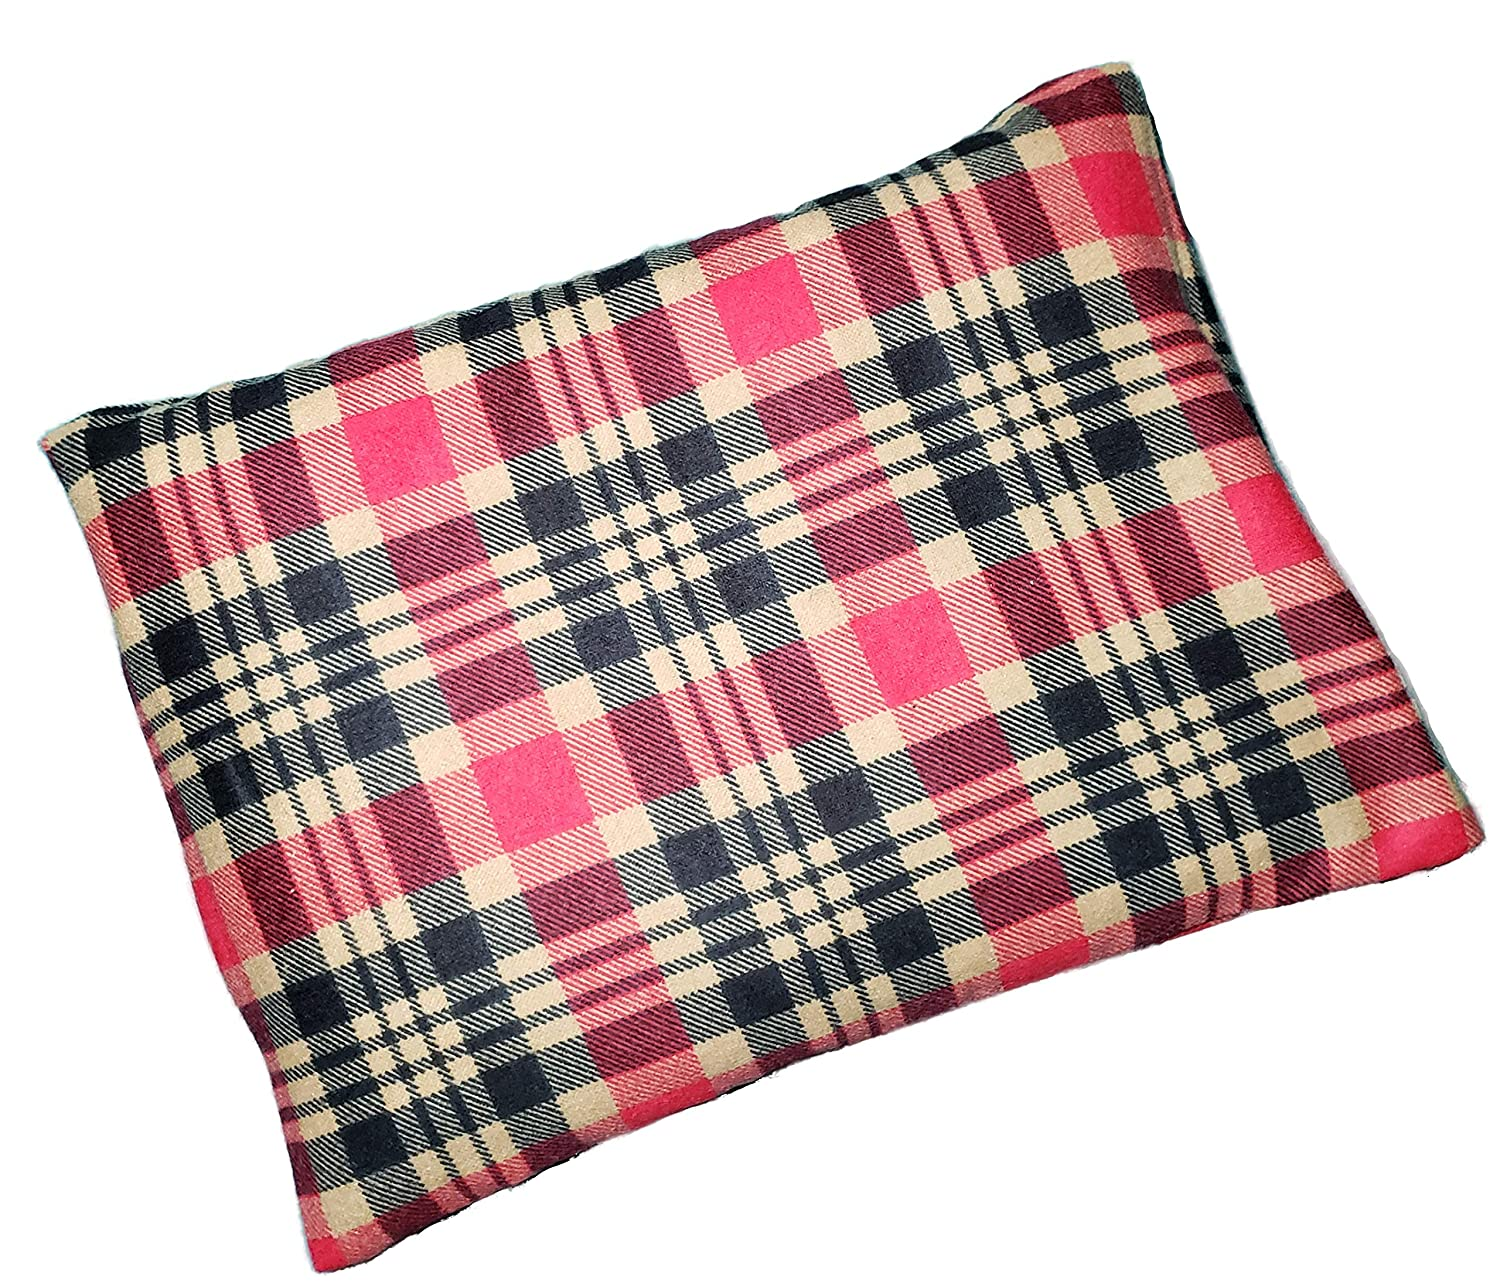 """Microwavable Corn Filled Heating Pad and Cold Pack/Washable 100% Cotton Cover (7.5""""Wx11""""L, Flannel - Tan/Red)"""